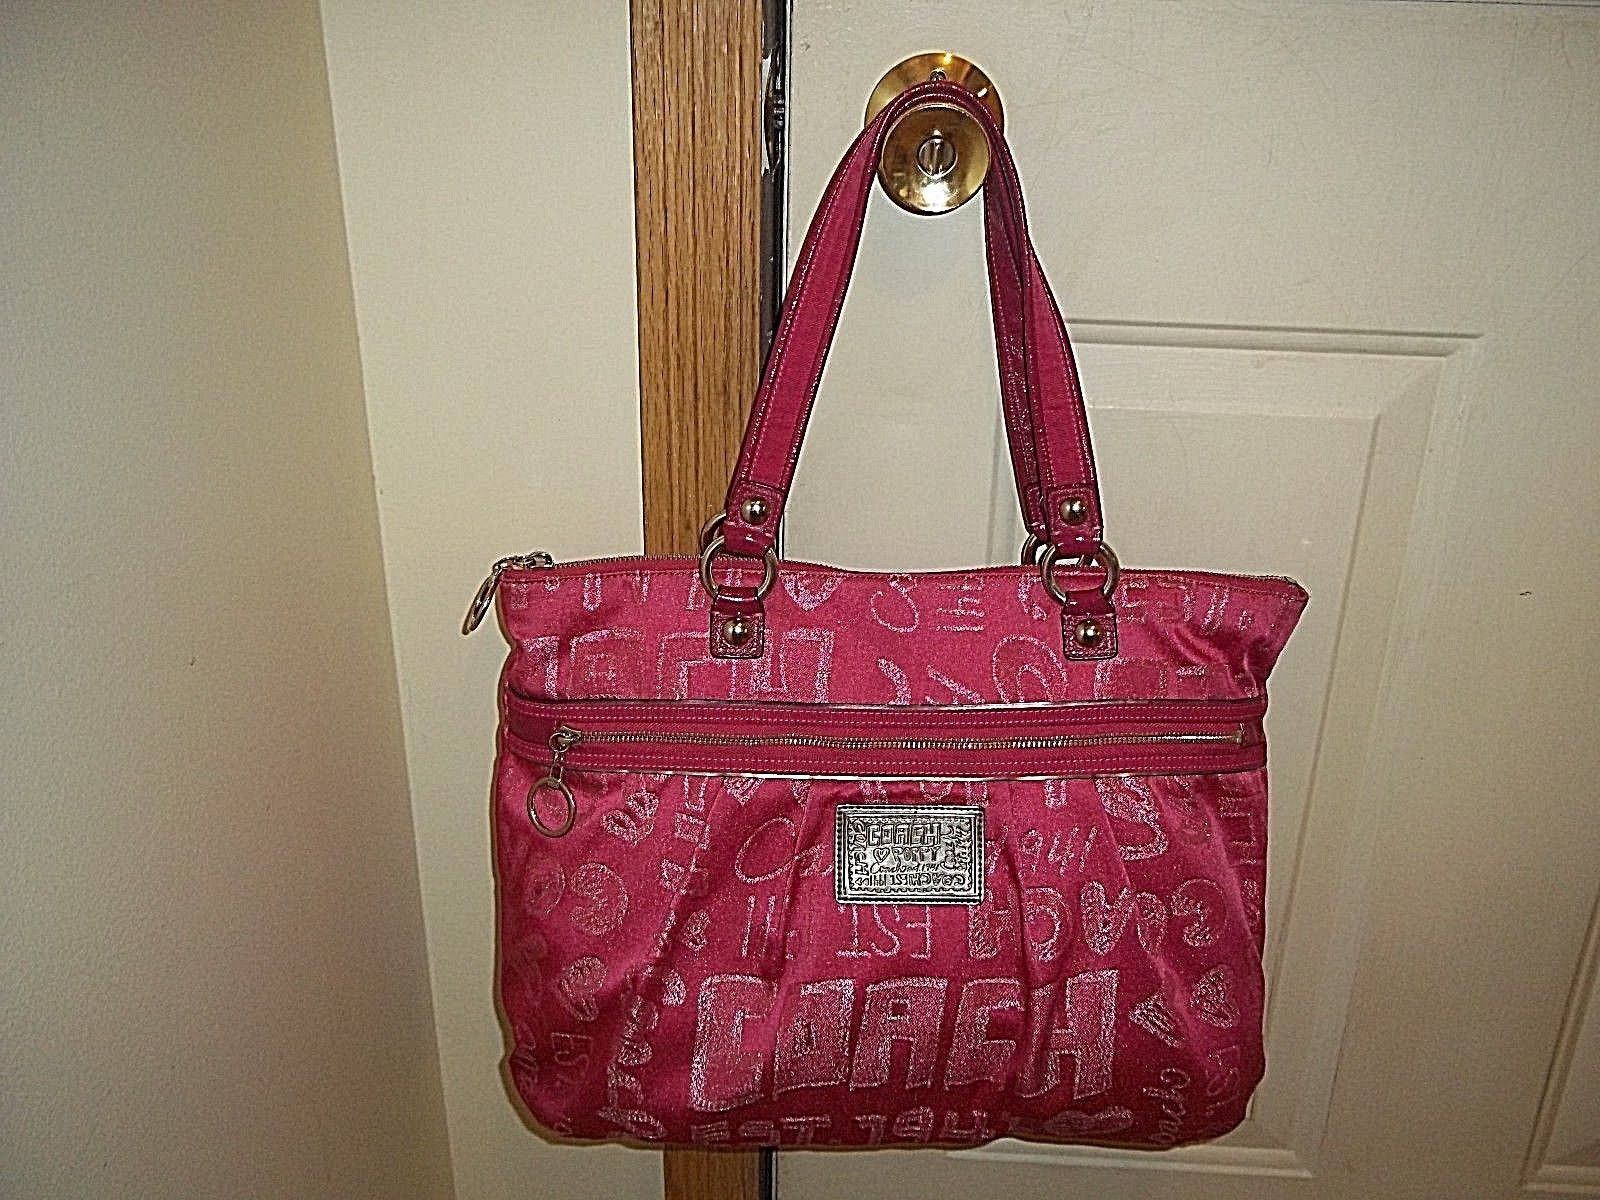 Authentic Coach Poppy Pink Metallic Storypatch Glam Tote 15301  https://t.co/8f9EMtoiCt https://t.co/4DamvleMbg